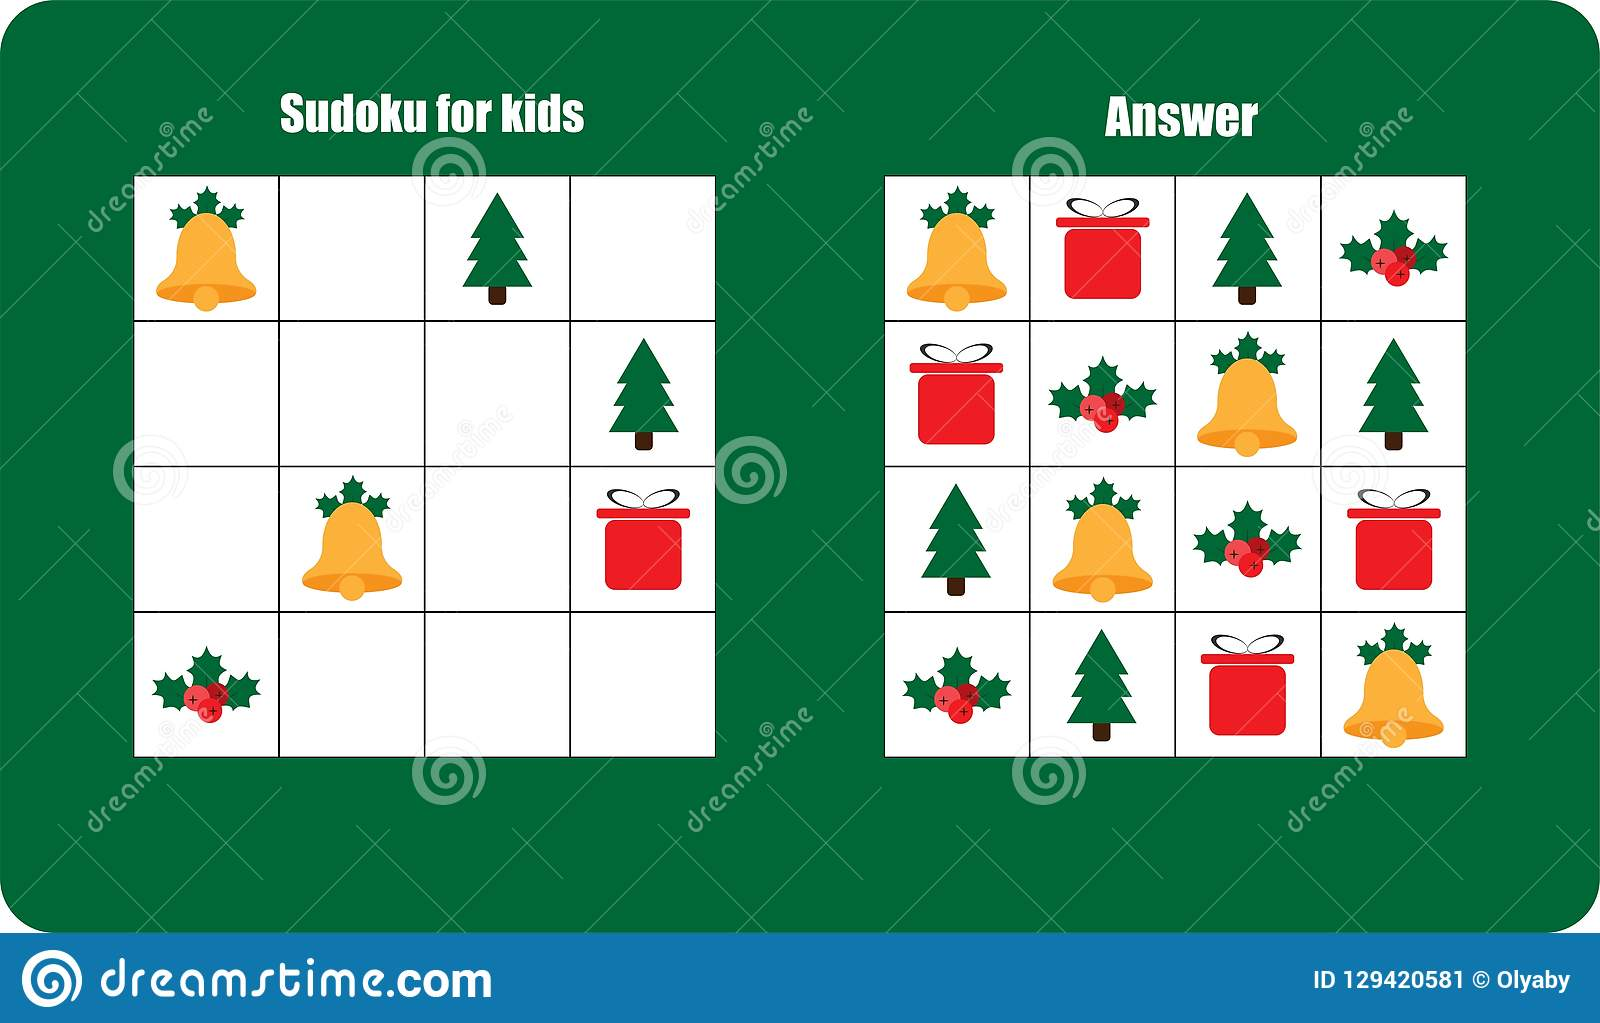 Sudoku Game With Christmas Pictures Bell T For